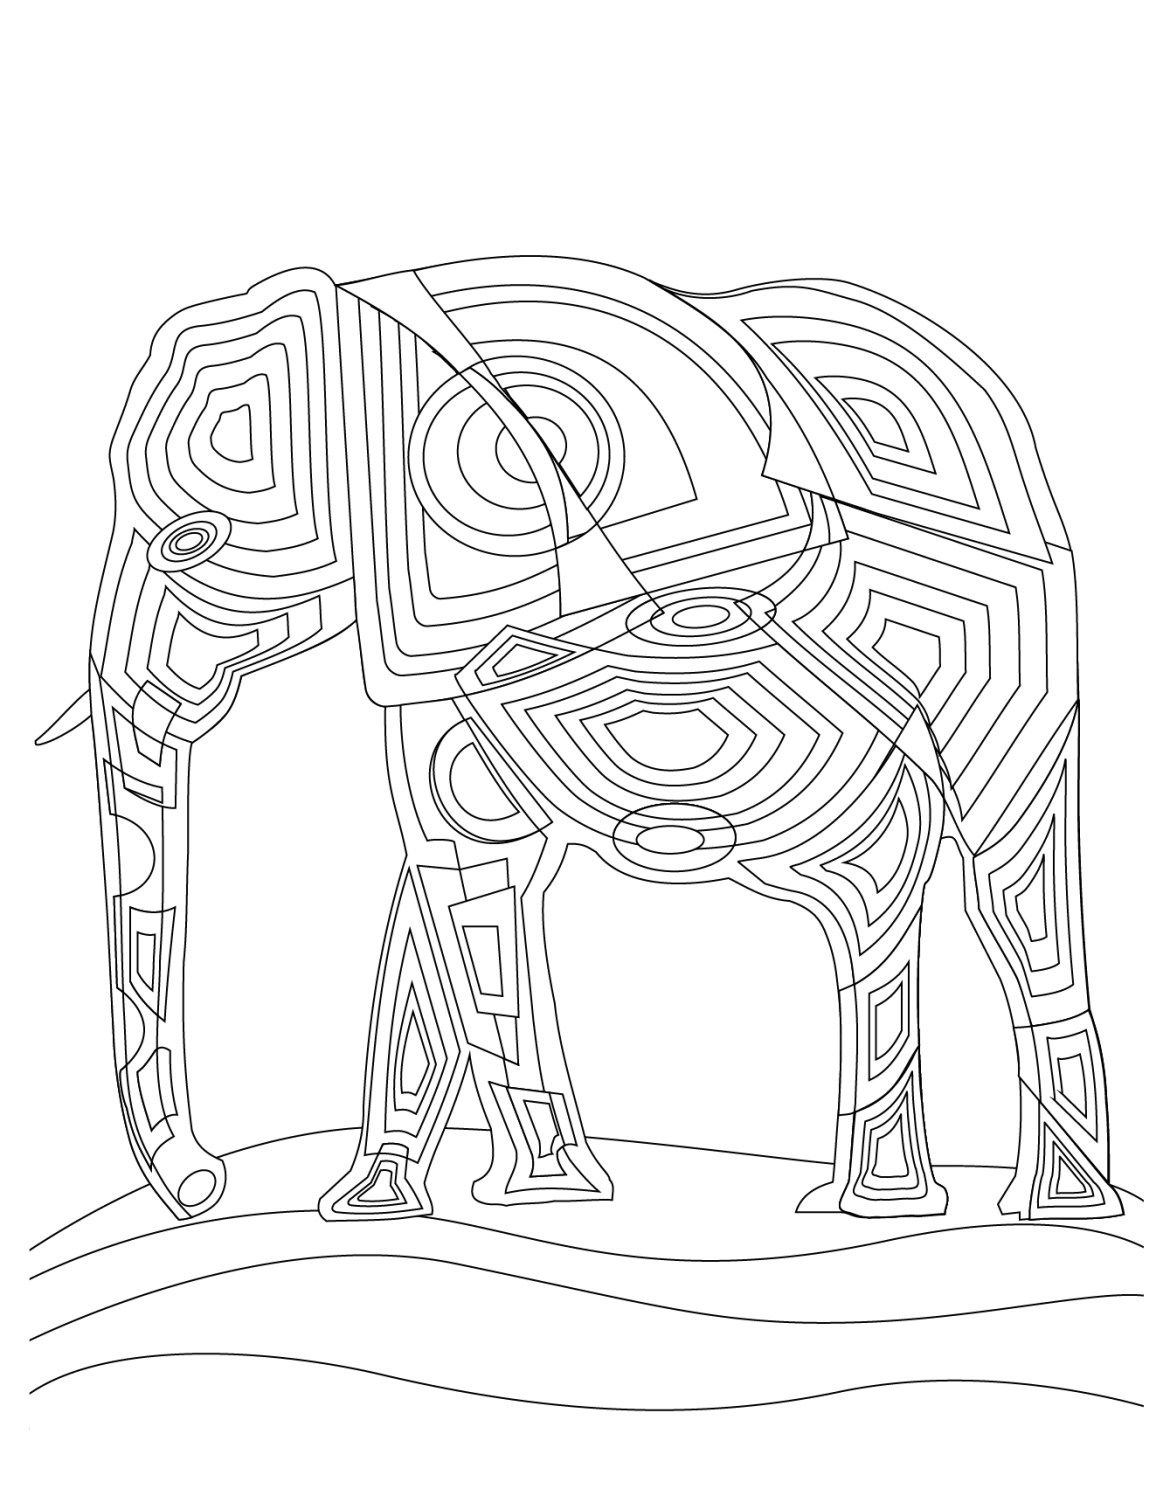 Art thérapie animaux éléphant adult coloring book pages